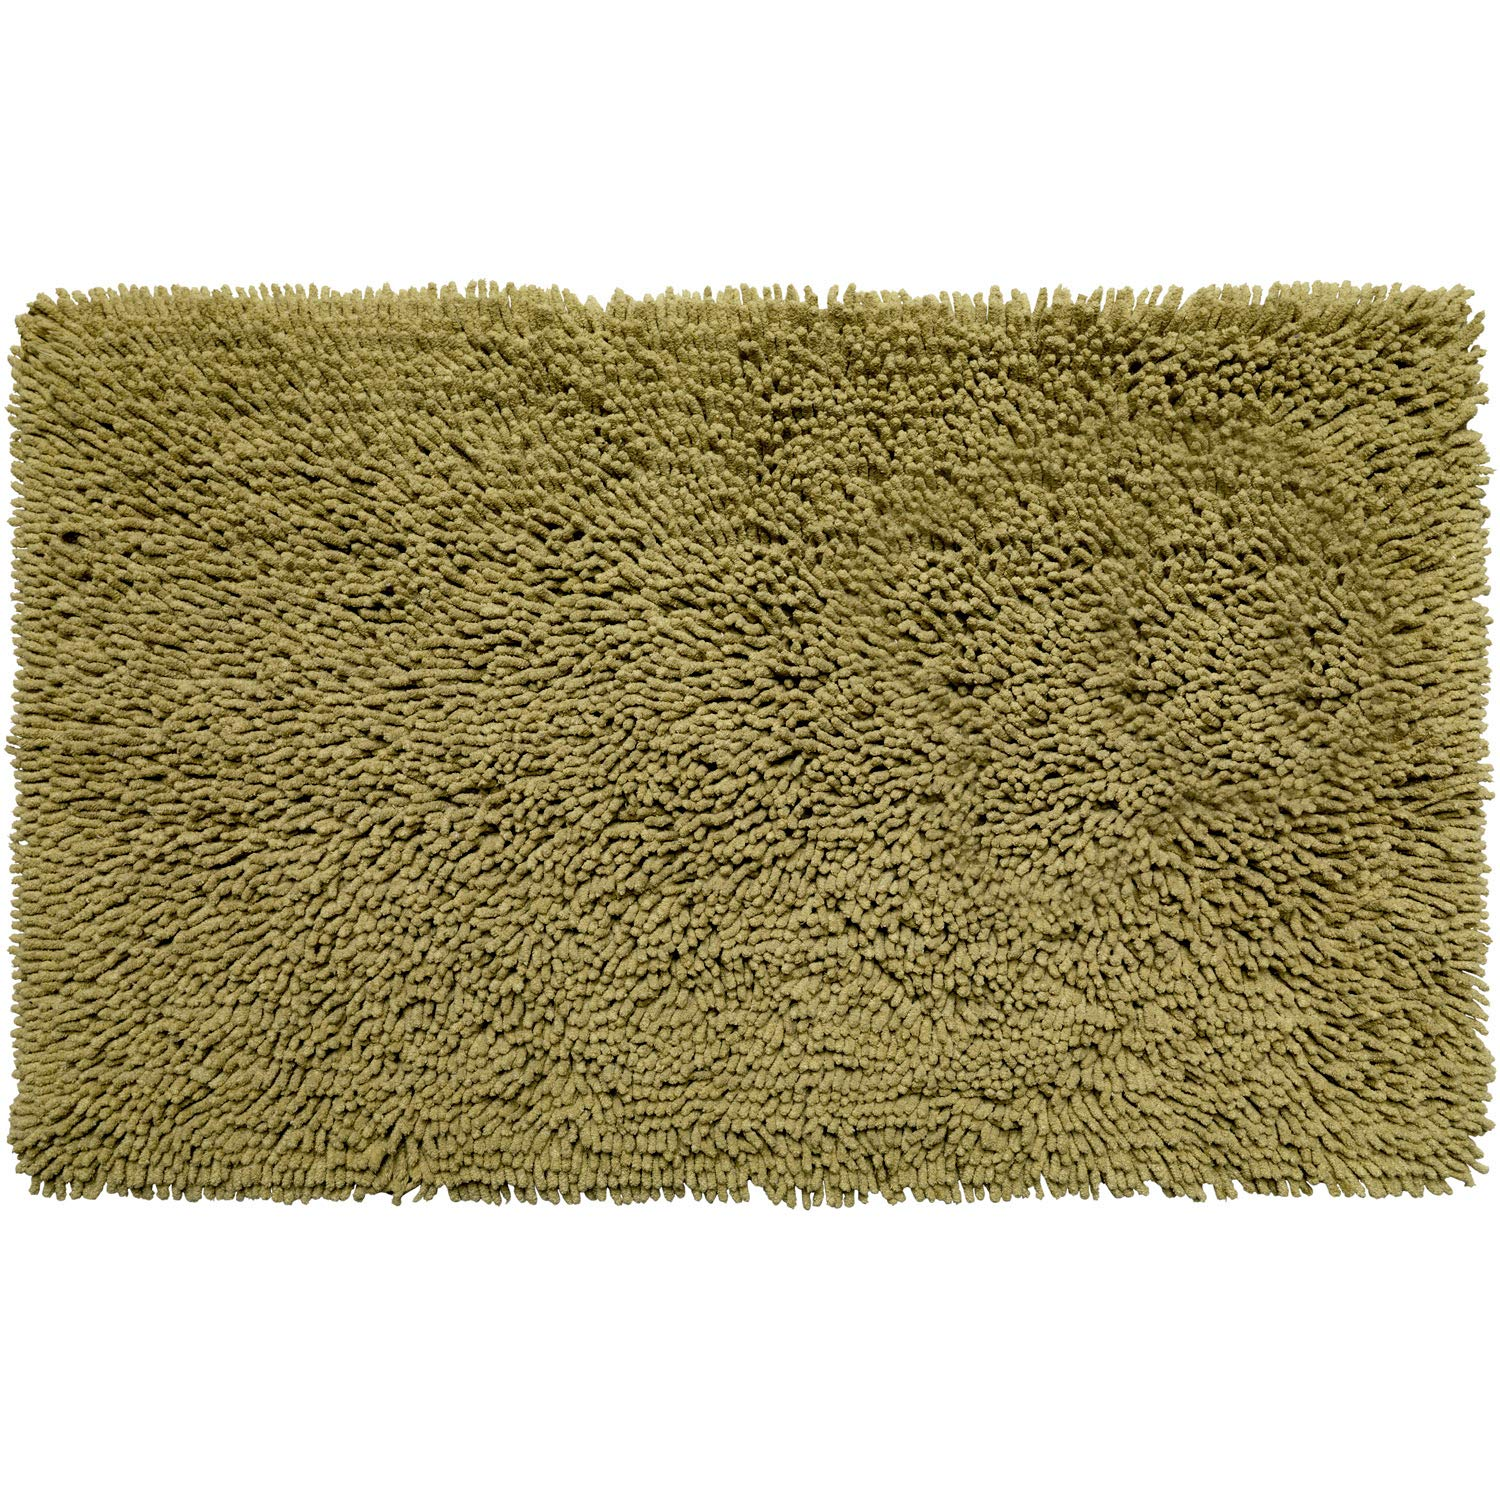 Sweet Home Collection Shaggy, Decorative, Easy Wash 100% Cotton Absorbent, Soft, Comfortable, Quick Dry Rug for Bathroom Floor 21' x 34' Sage